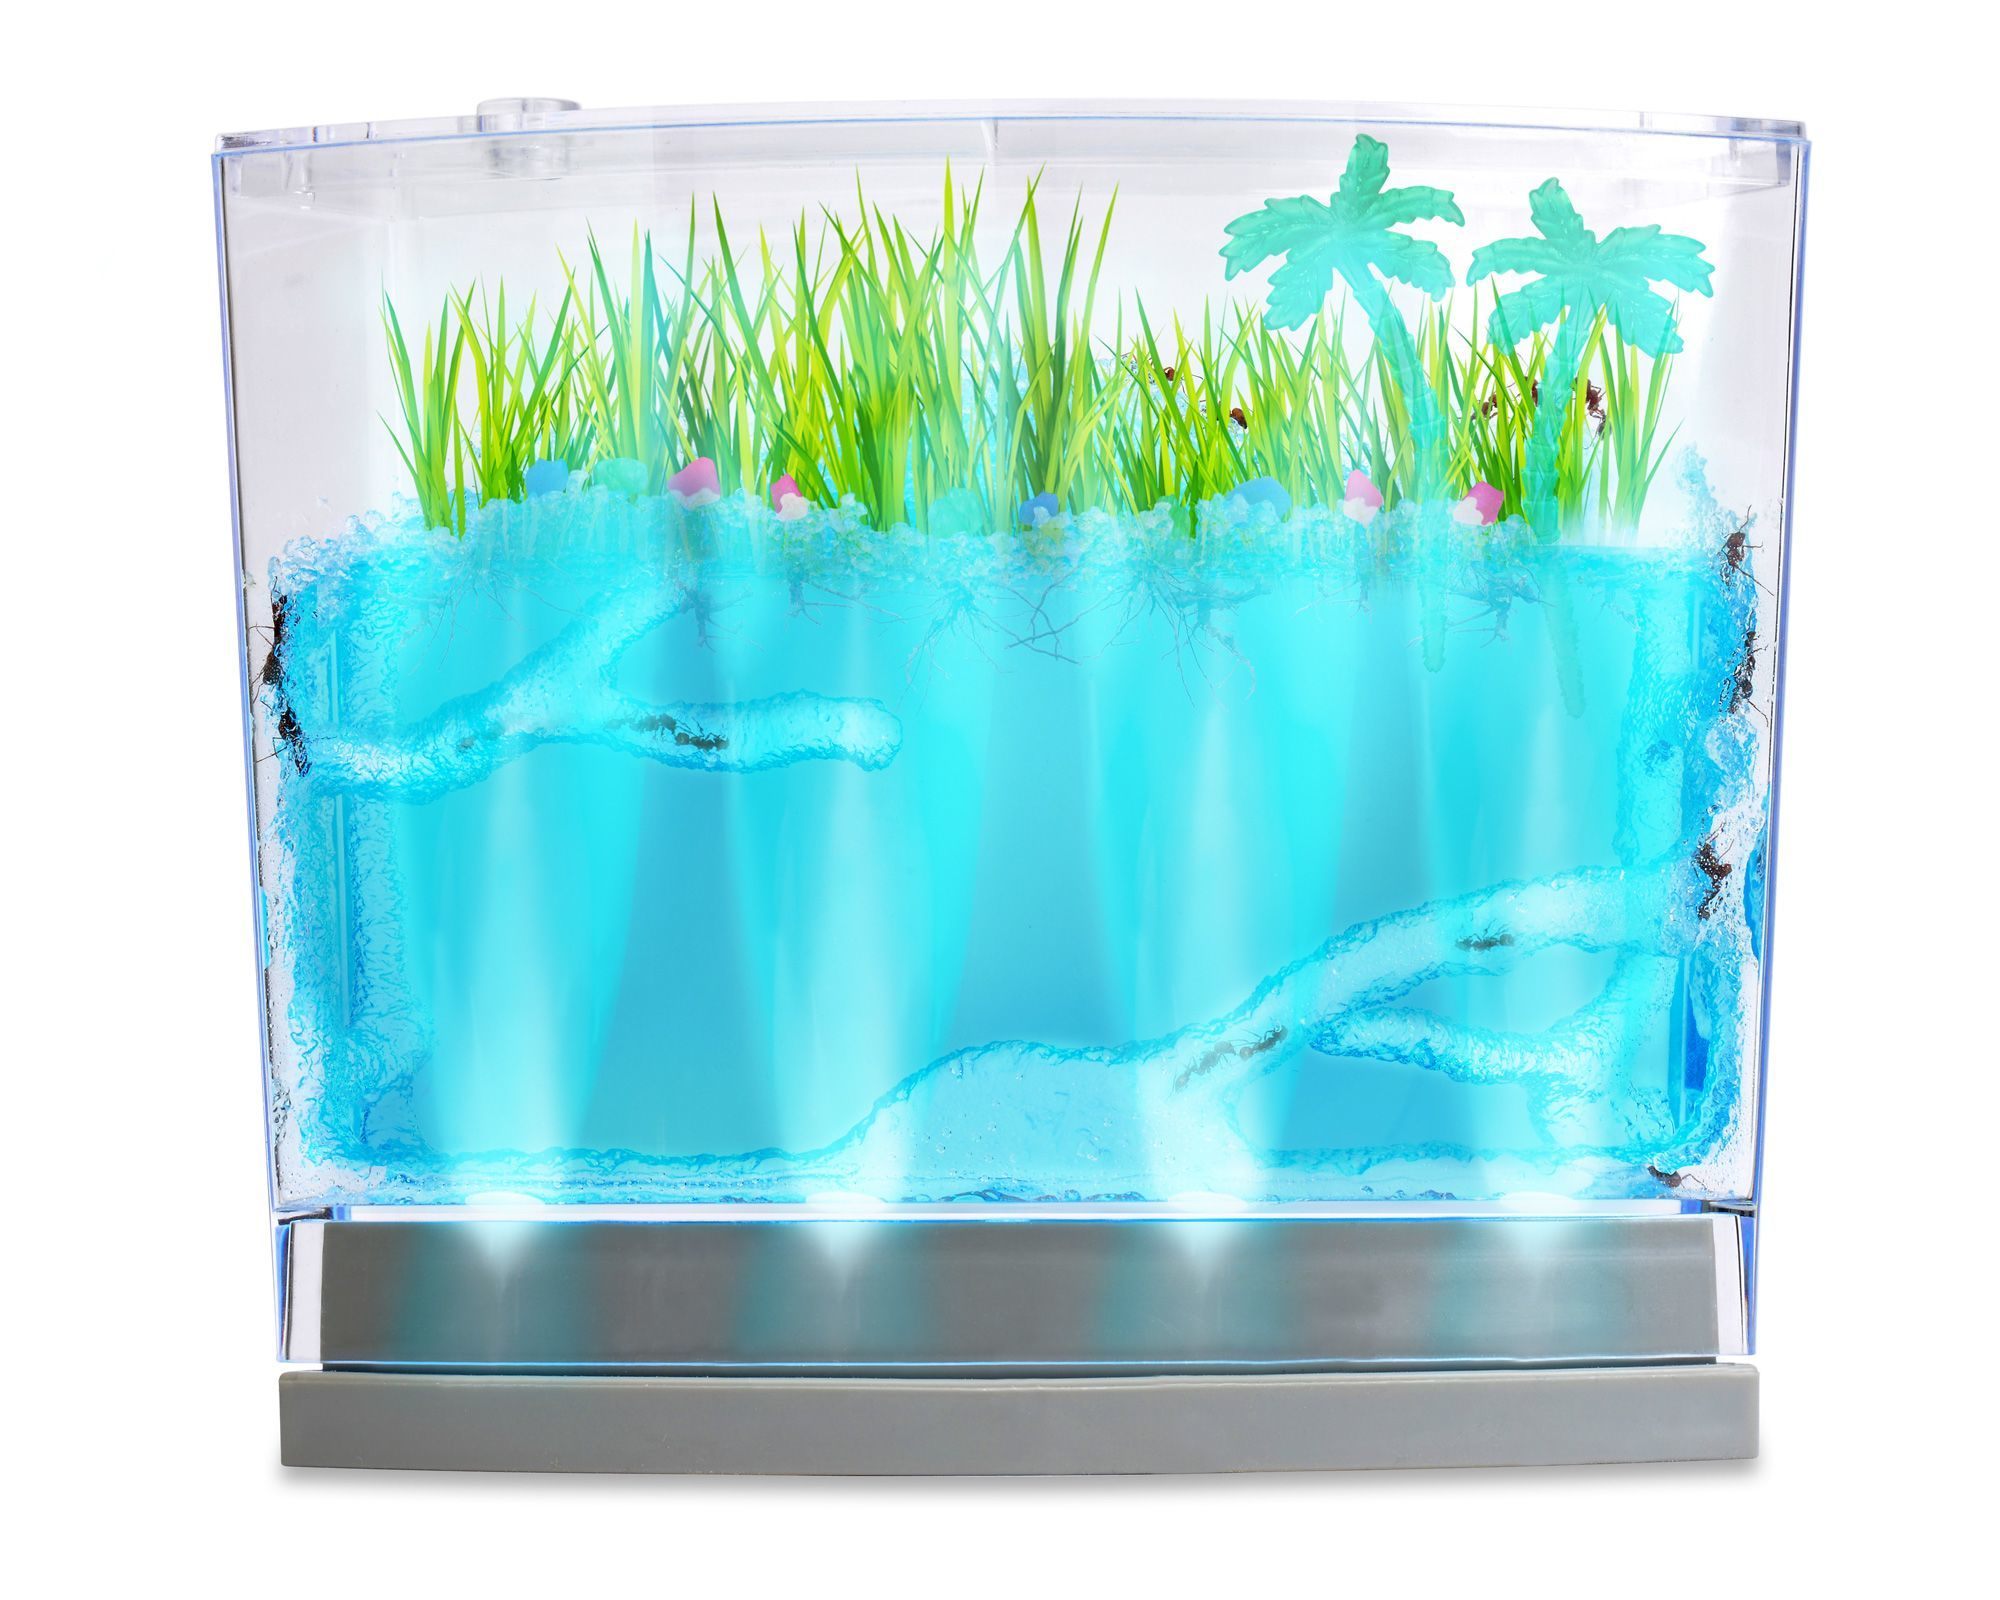 Lighted Ecosystem Ant Habitat SHIPPED WITH LIVE ANTS